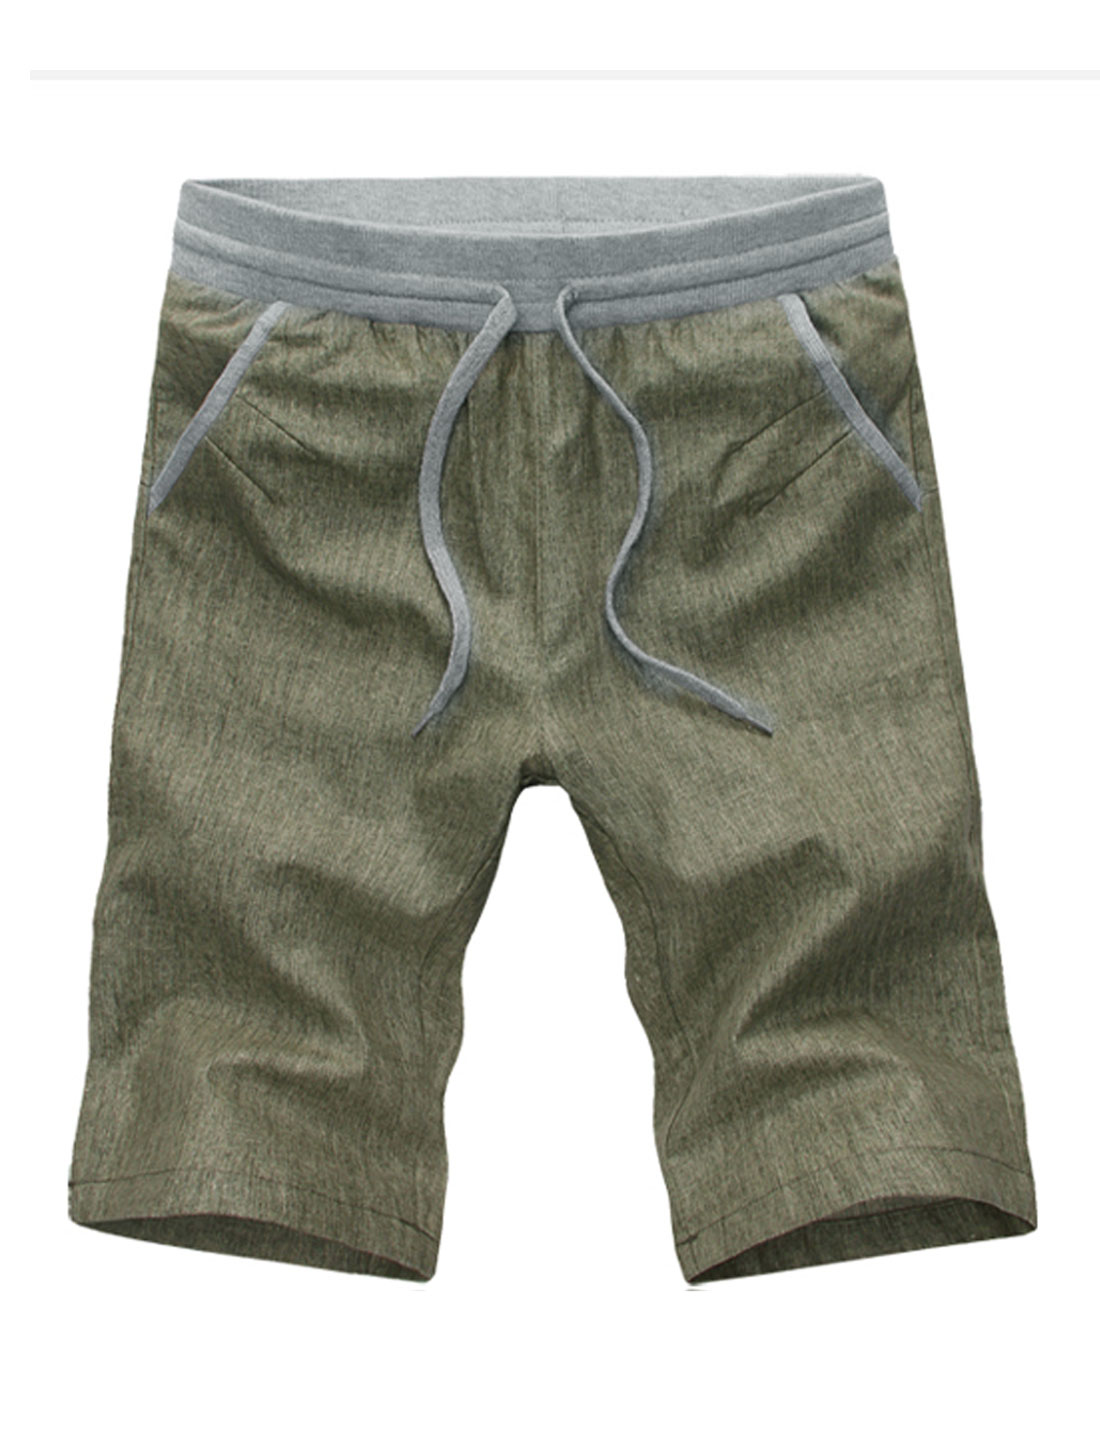 Men Ribbed Stretchy Waist Pockets Sides Panel Detail Linen Casual Shorts Army Green W30